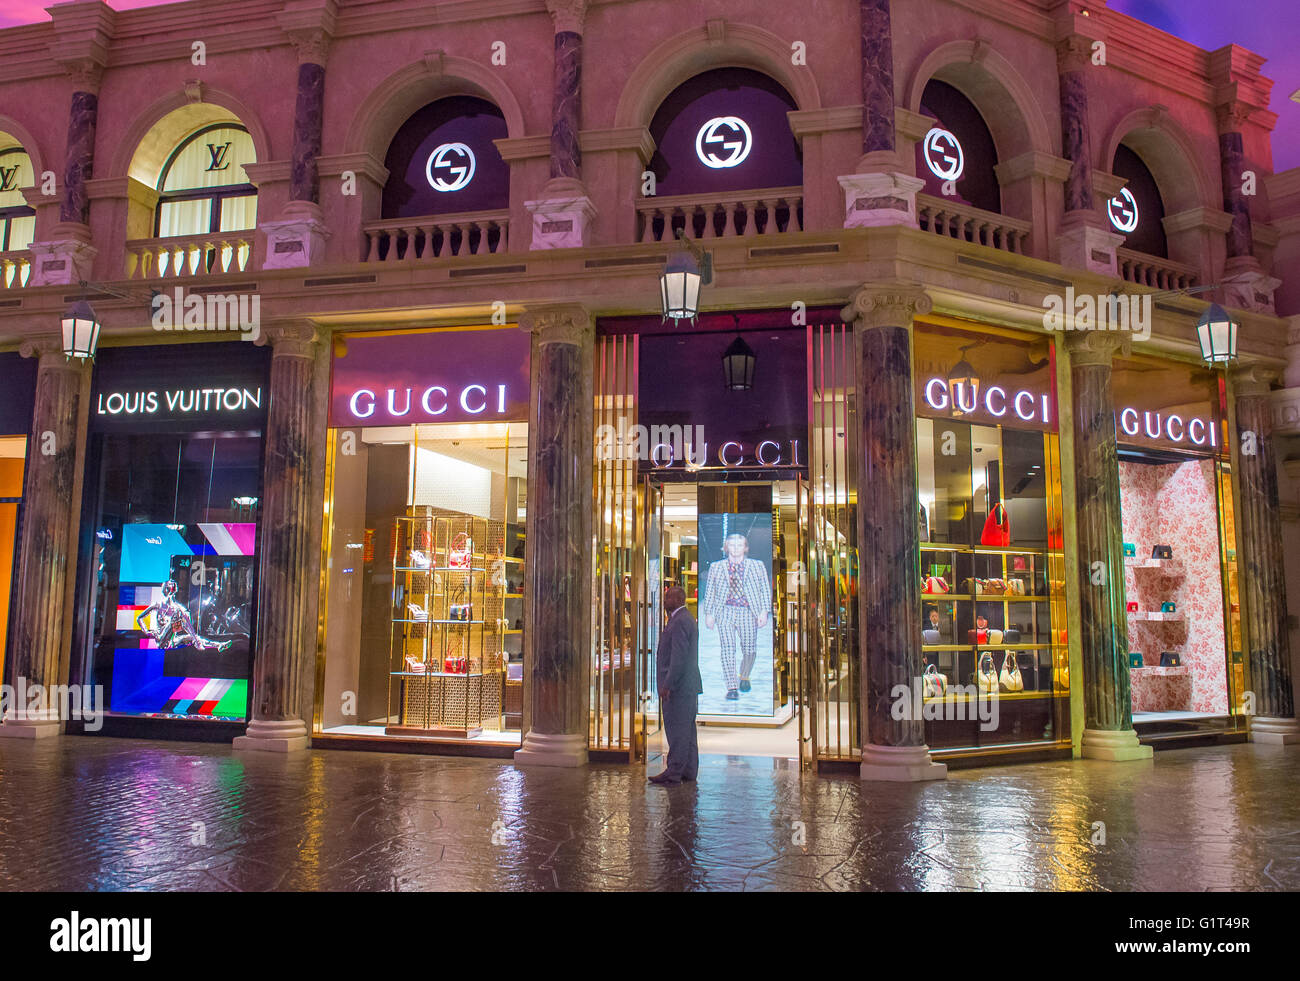 exterior of a gucci store in caesars palace hotel in las vegas stock photo royalty free image. Black Bedroom Furniture Sets. Home Design Ideas